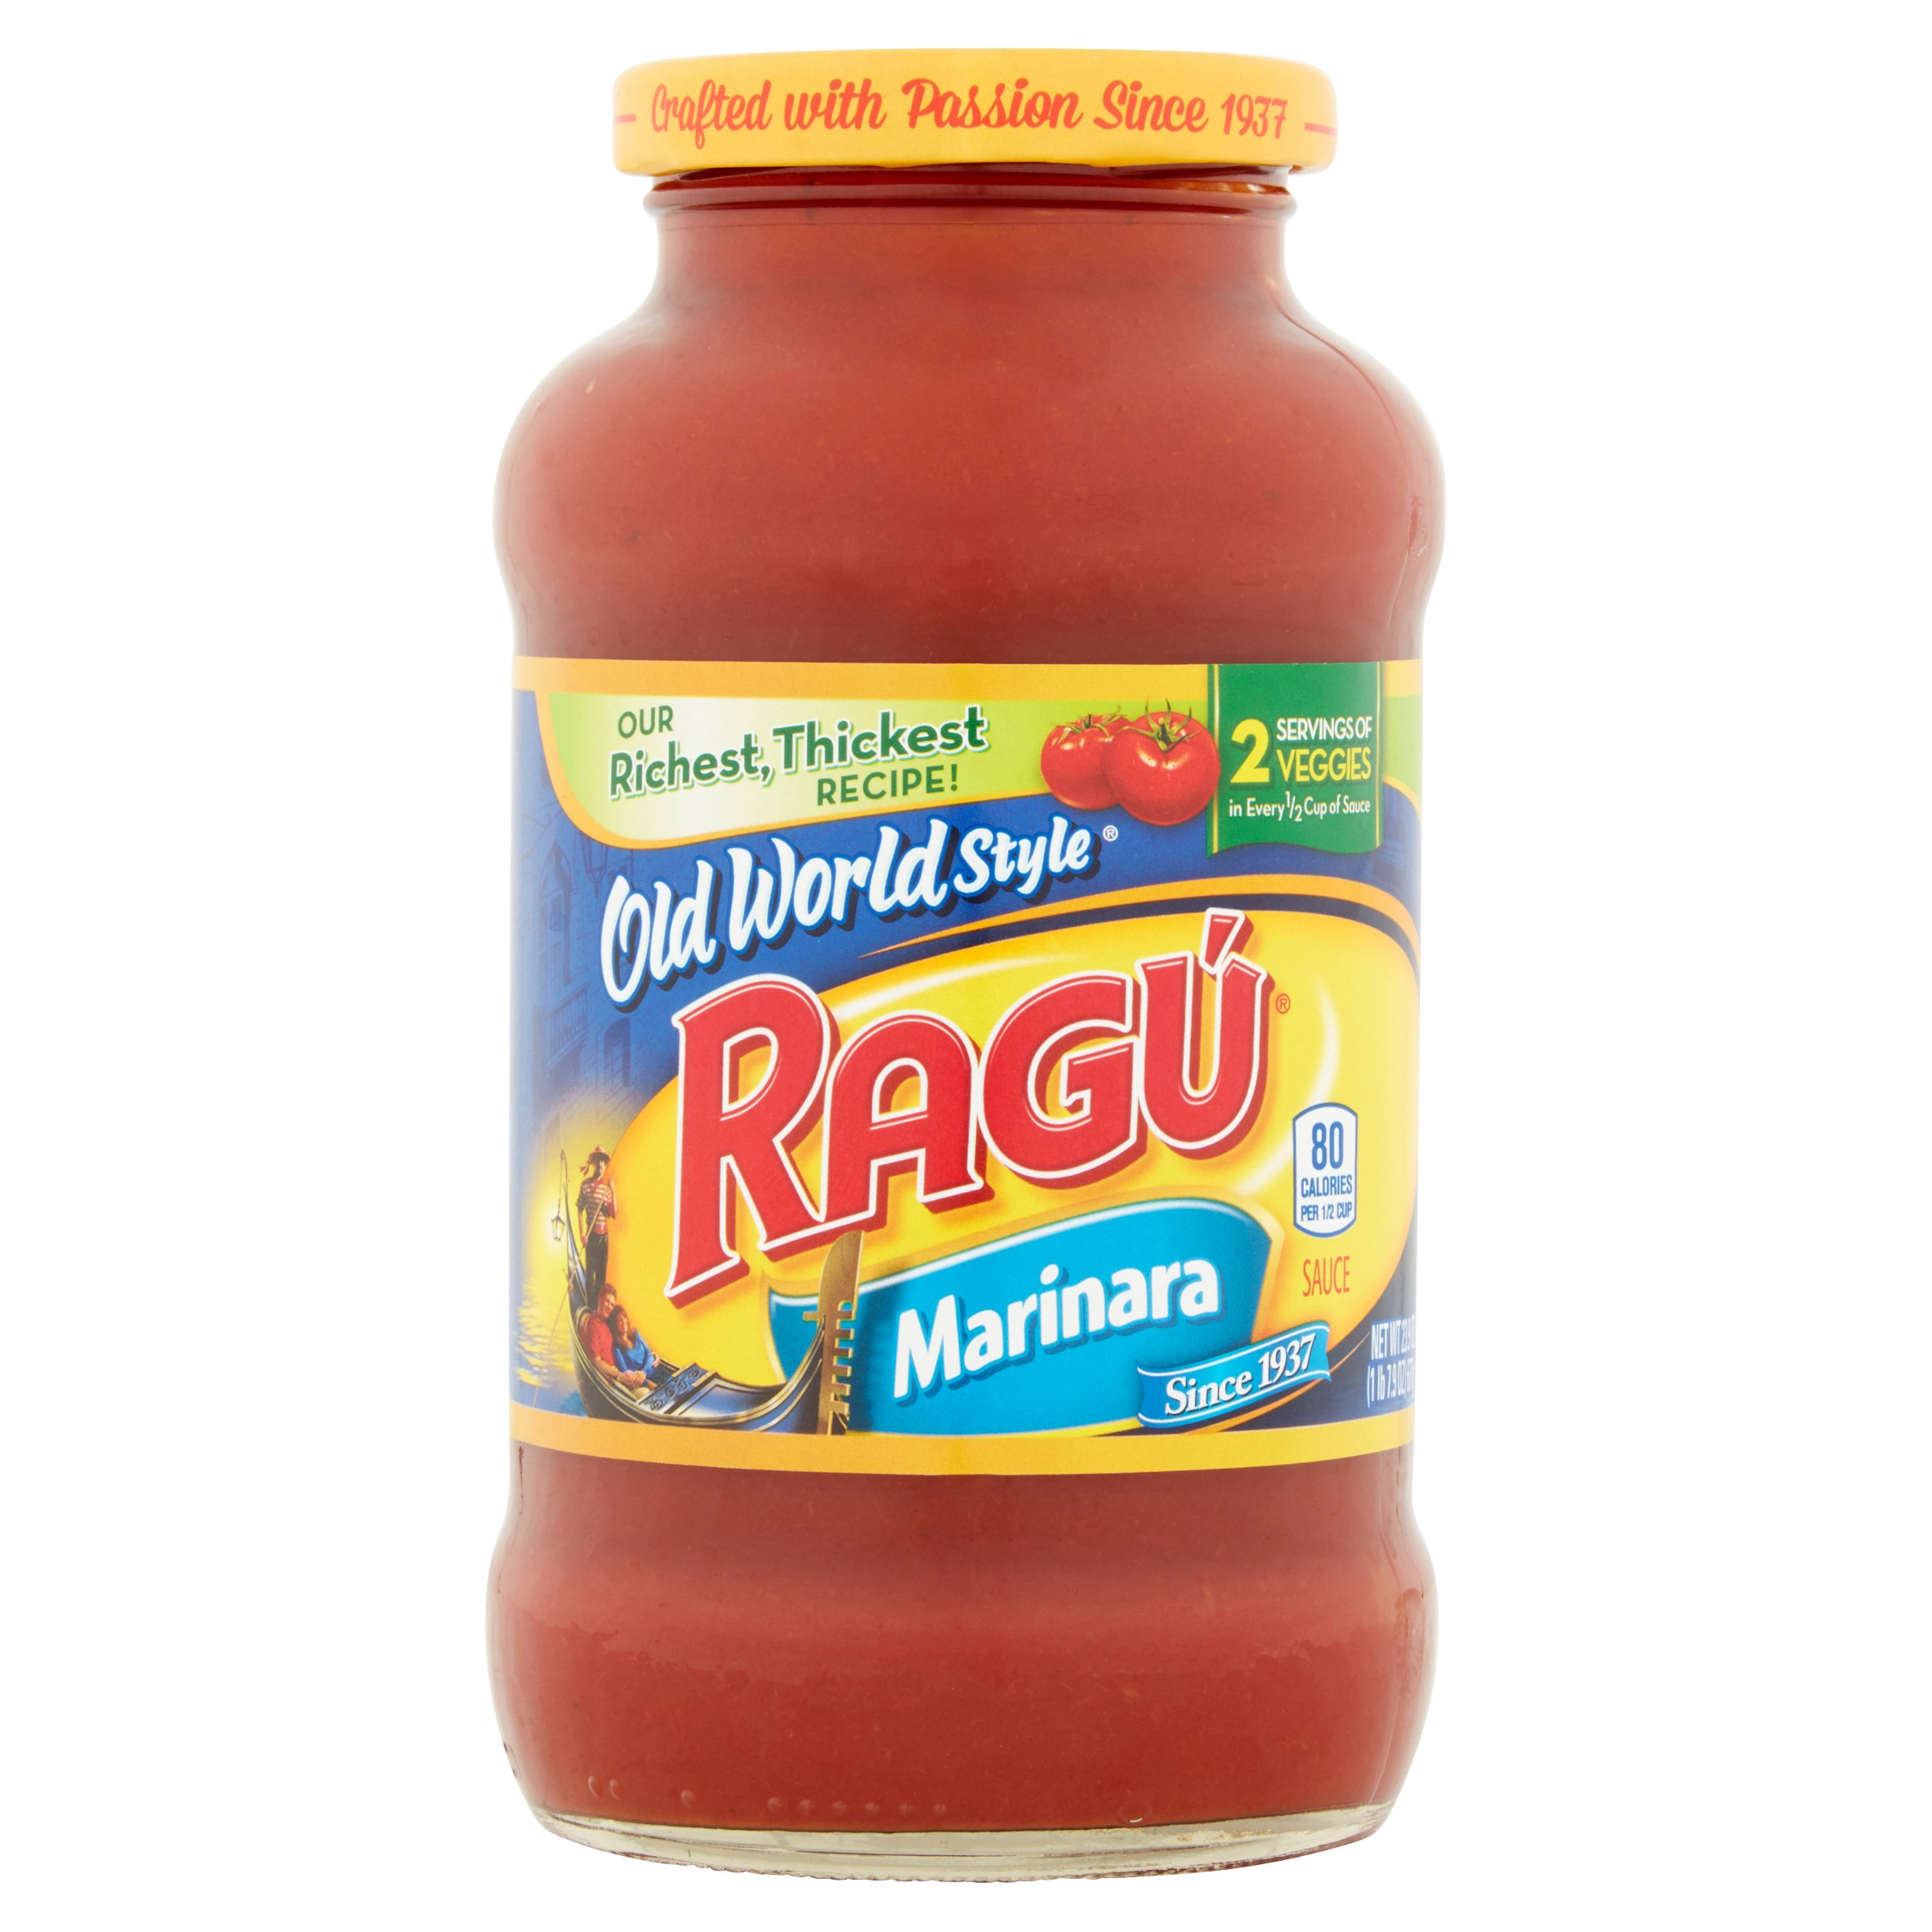 Ragú Old World Style Marinara Pasta Sauce 24 oz.